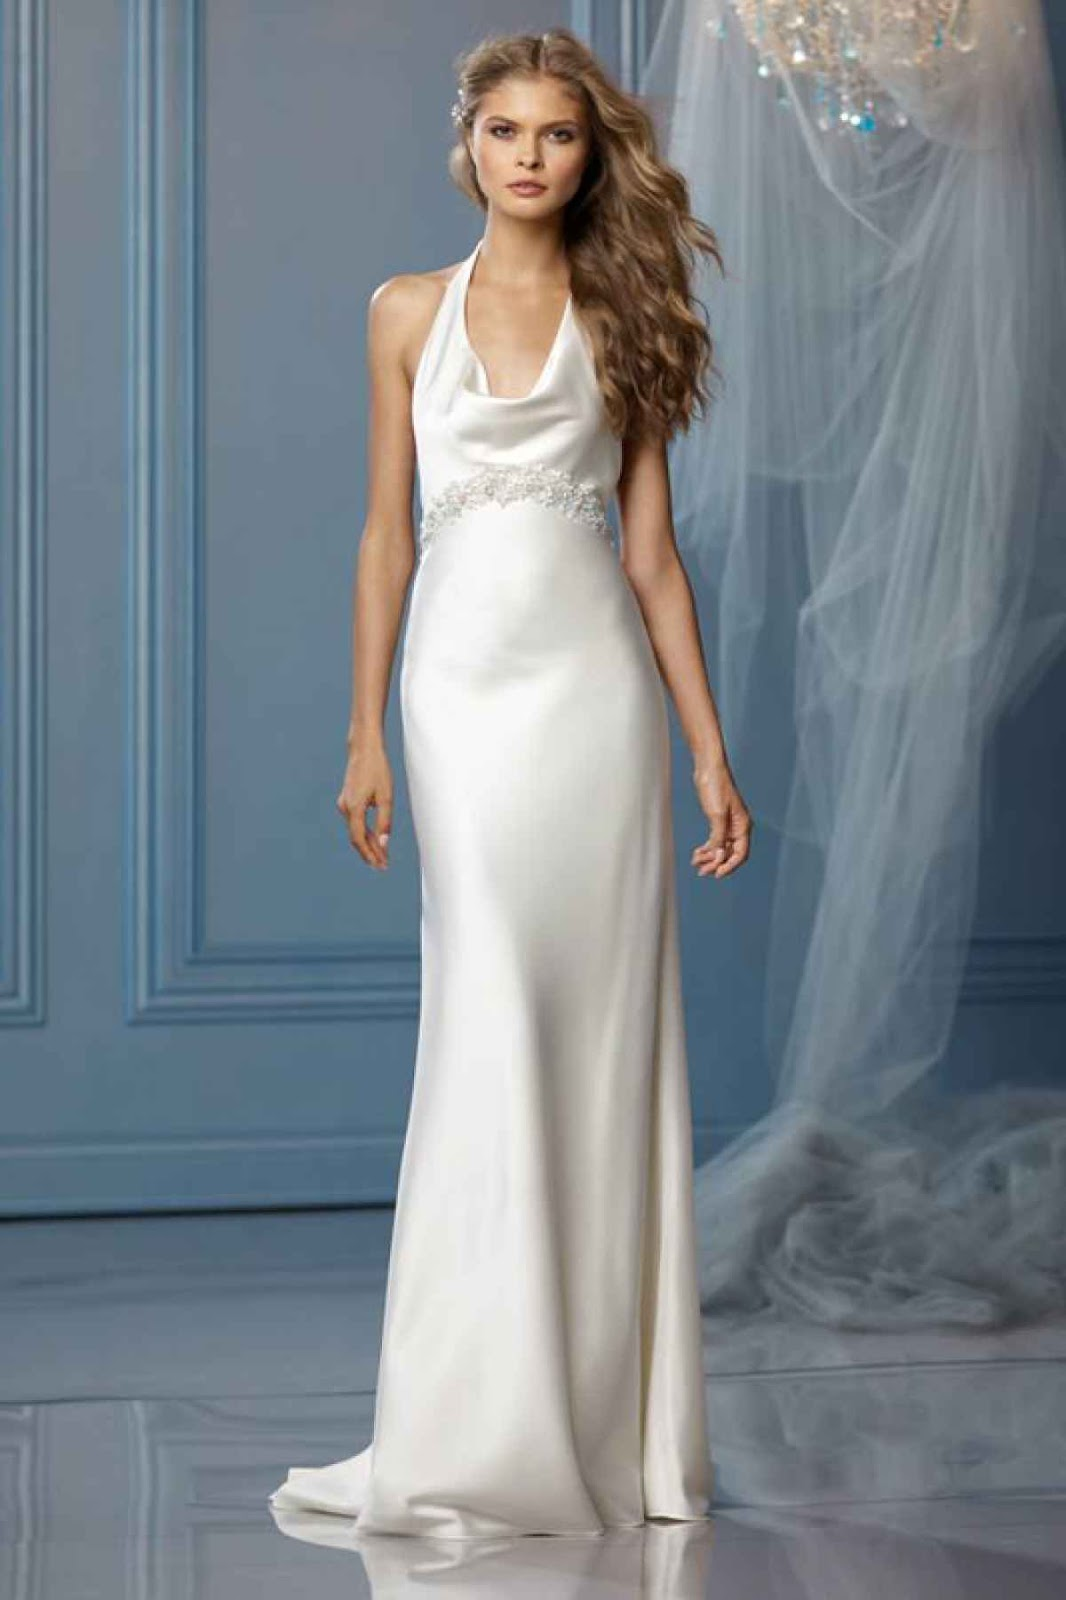 Very Very Very Cheap Bridesmaid Dresses - Wedding Guest Dresses